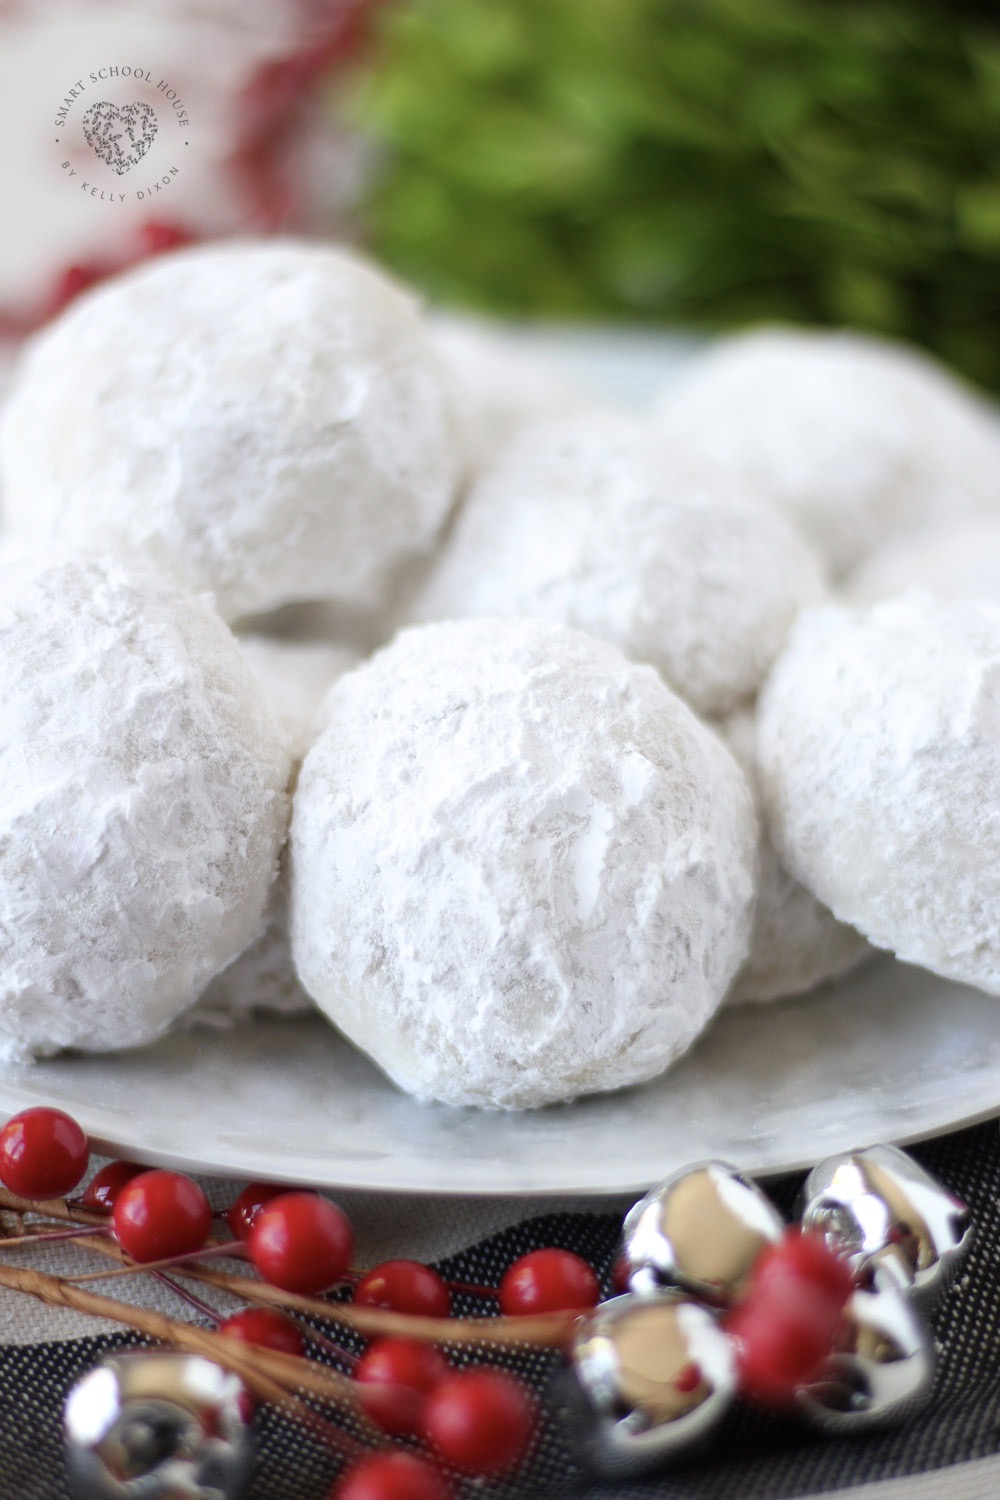 Our Snowball Cookies are a Christmas favorite! They have a buttery vanilla flavor surrounded by soft and snowy powdered sugar. These melt in your mouth cookies are a beautiful addition to your holiday cookie plates and dessert tables.